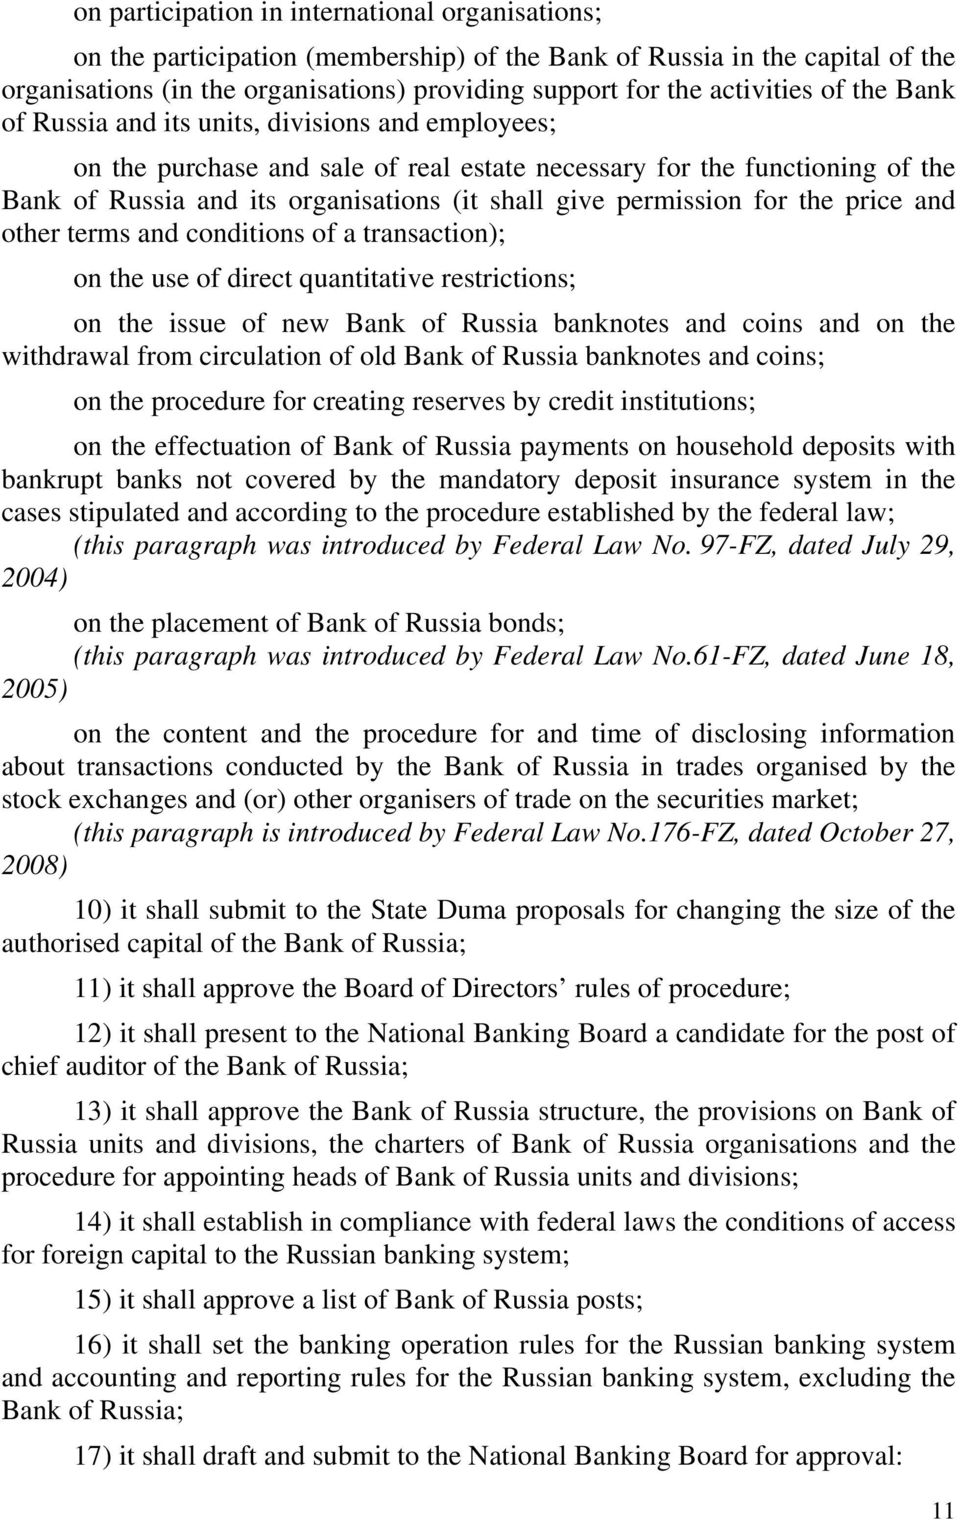 give permission for the price and other terms and conditions of a transaction); on the use of direct quantitative restrictions; on the issue of new Bank of Russia banknotes and coins and on the